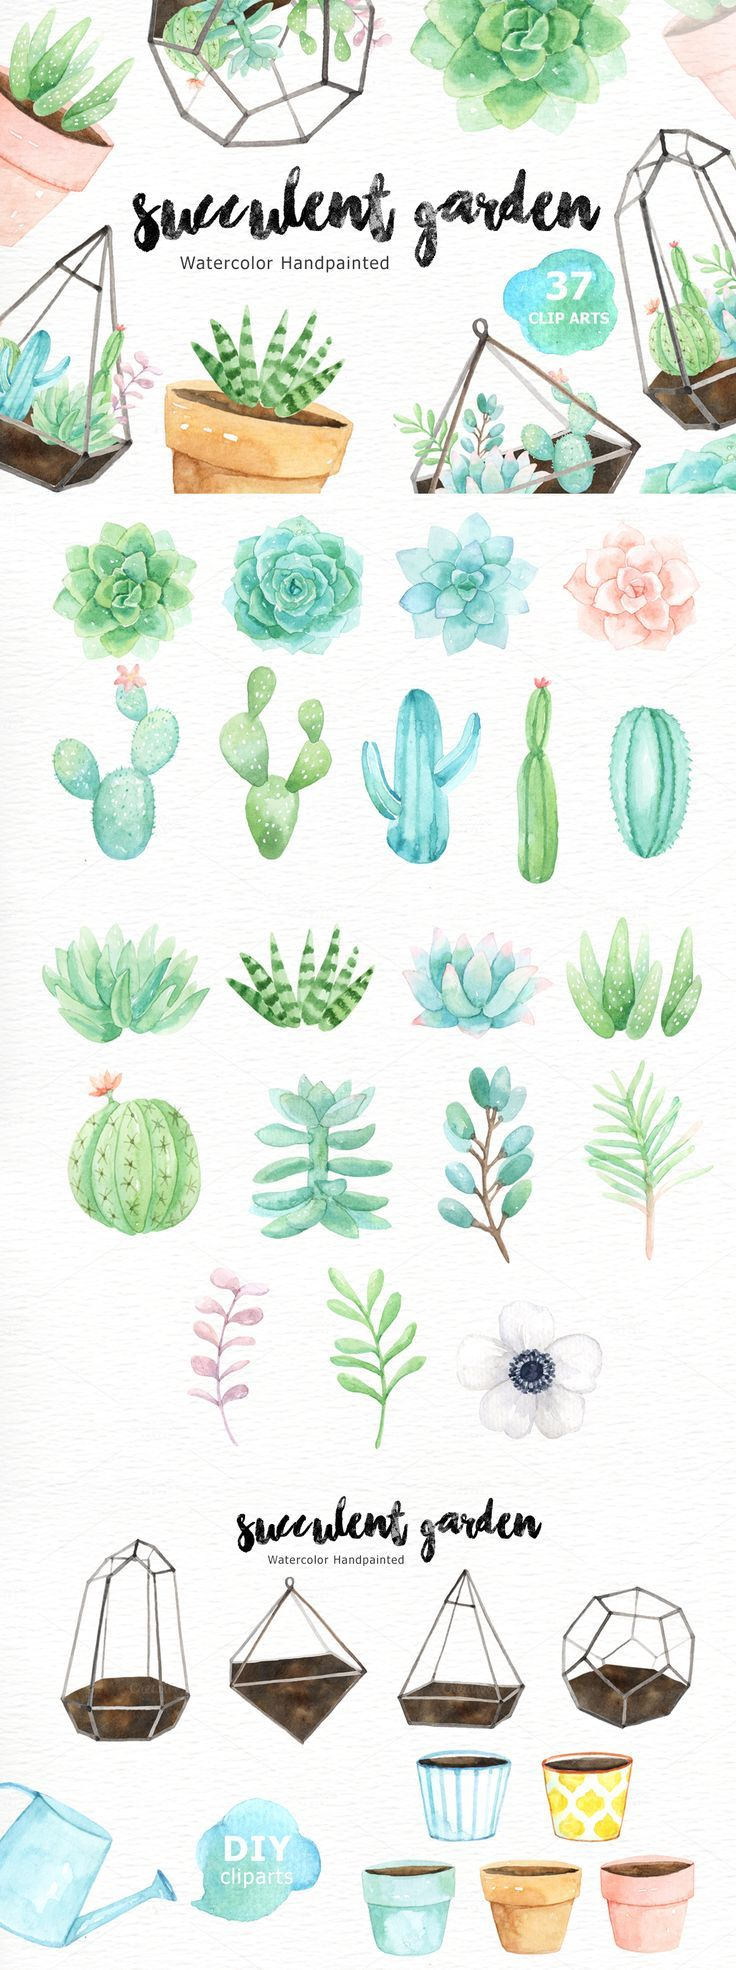 1st row second cactus, 2nd row first and second su…